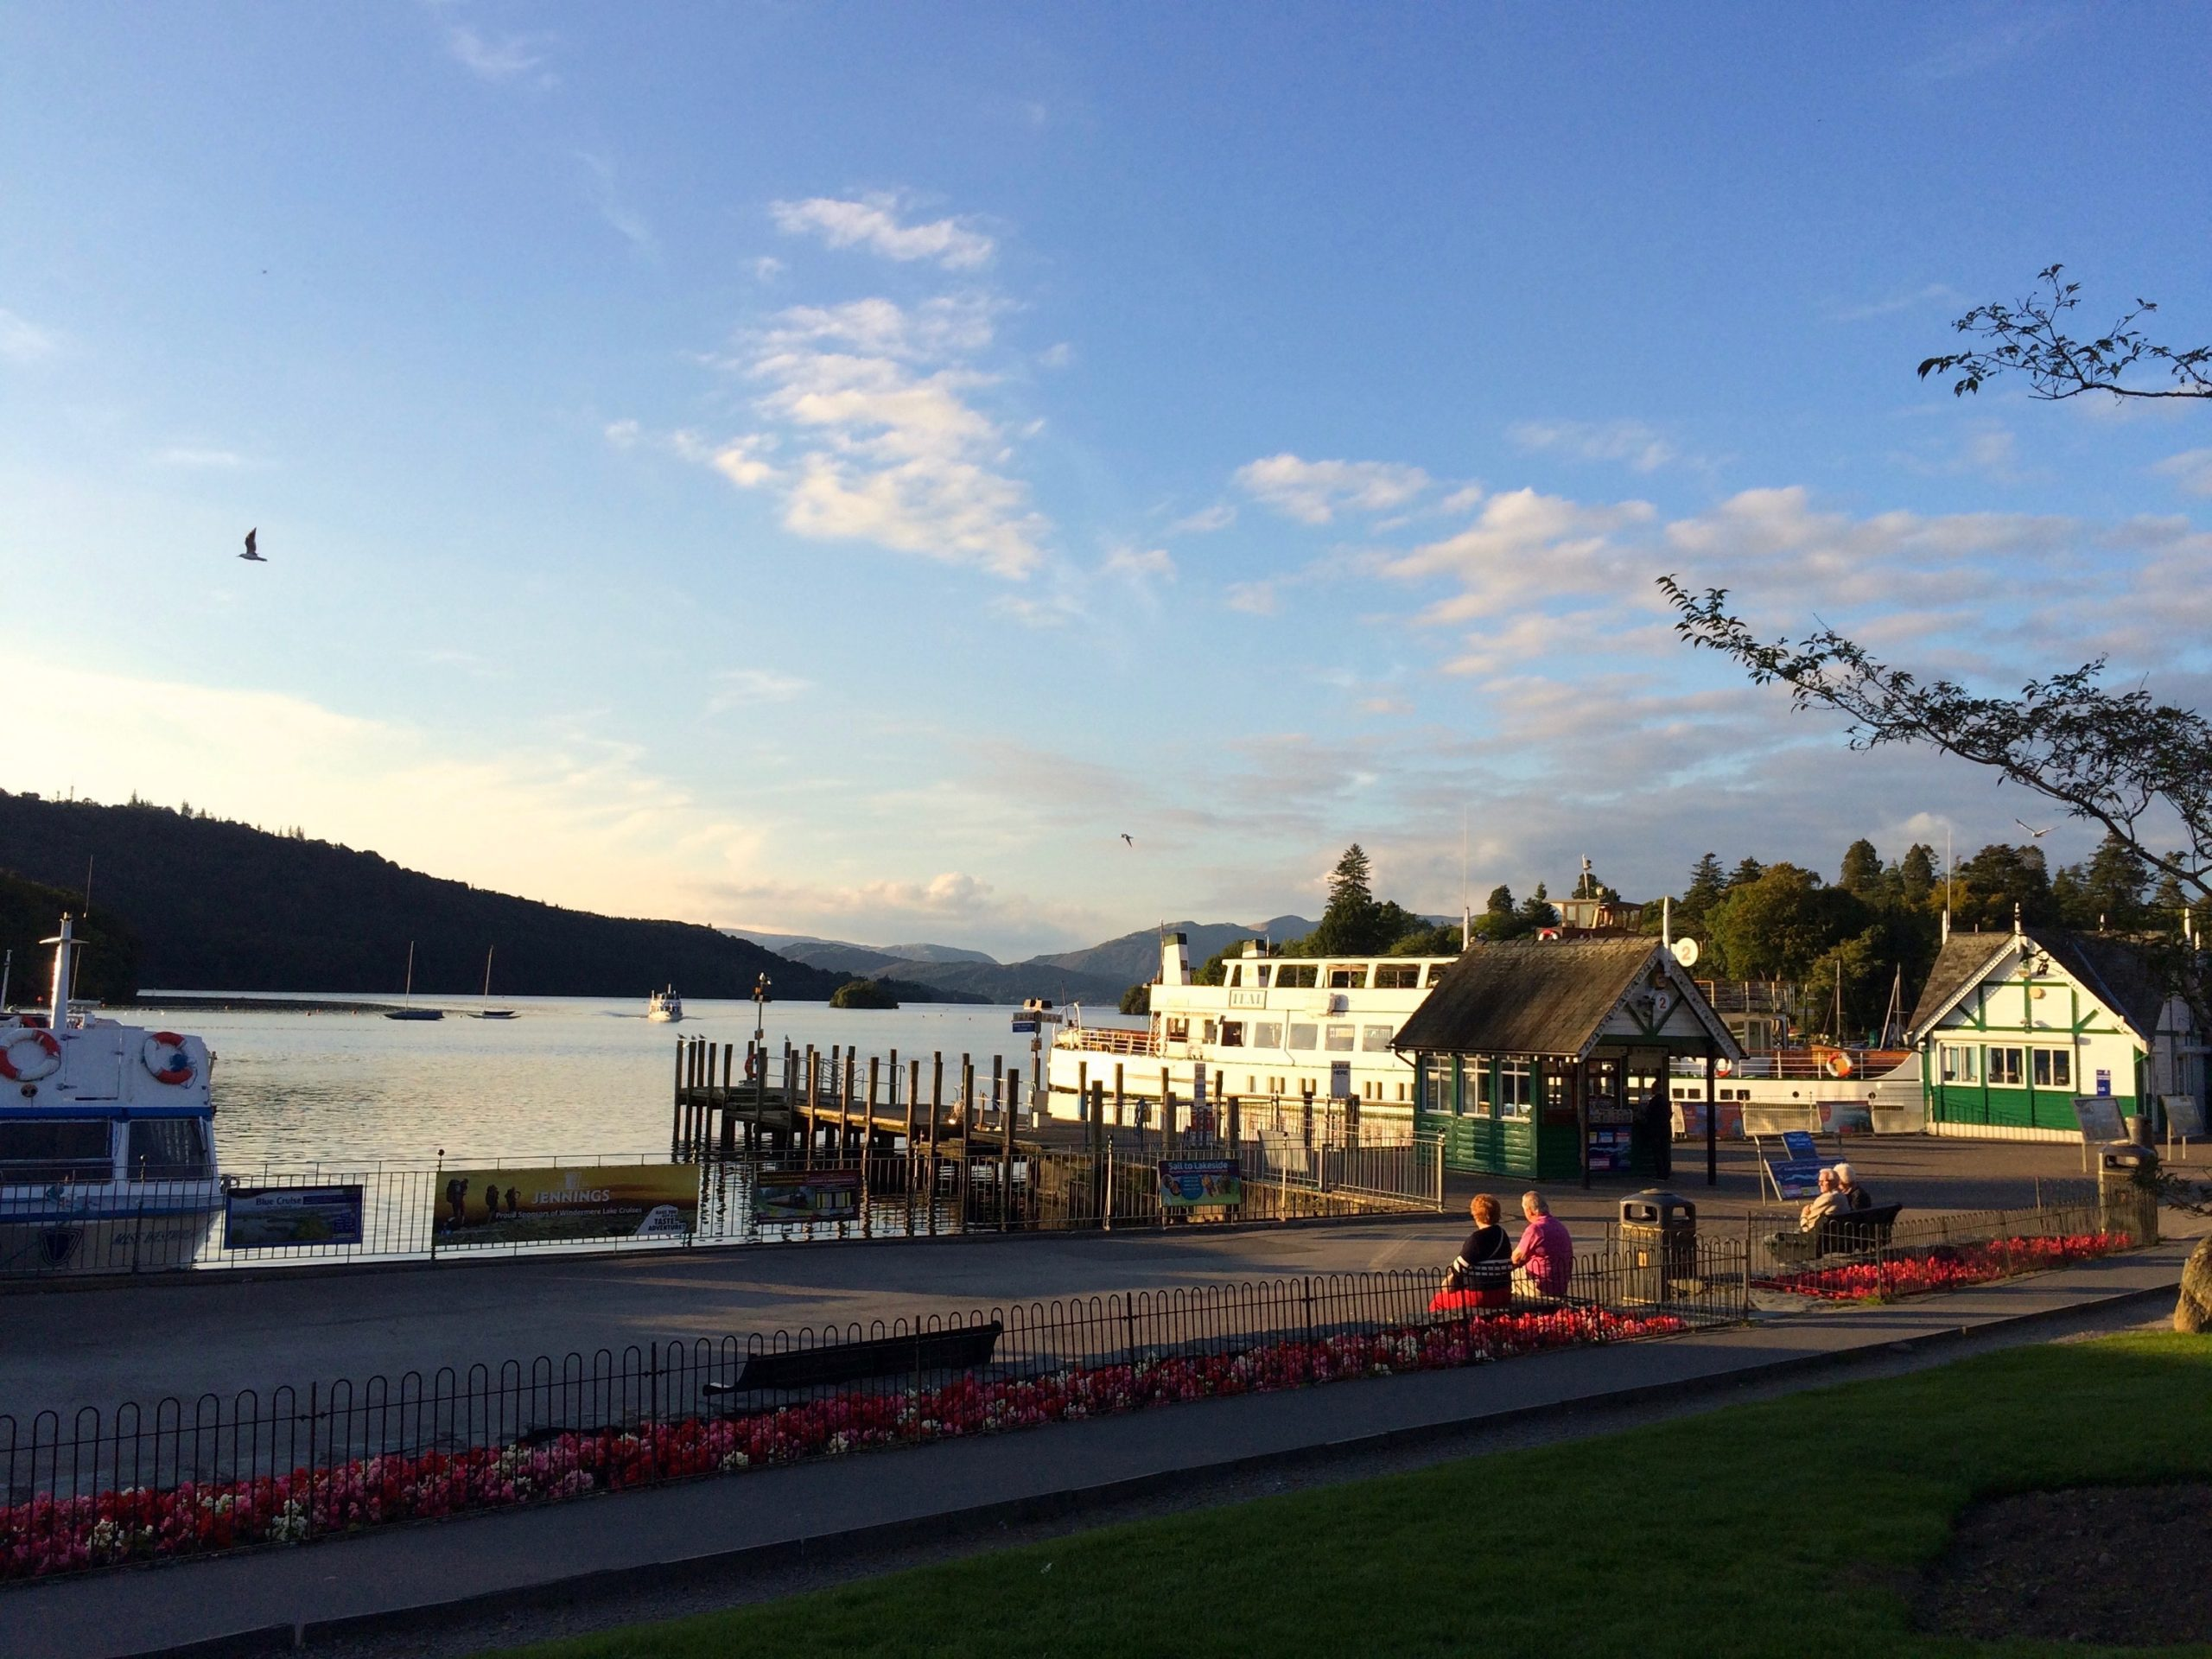 Two couples at Bowness Bay